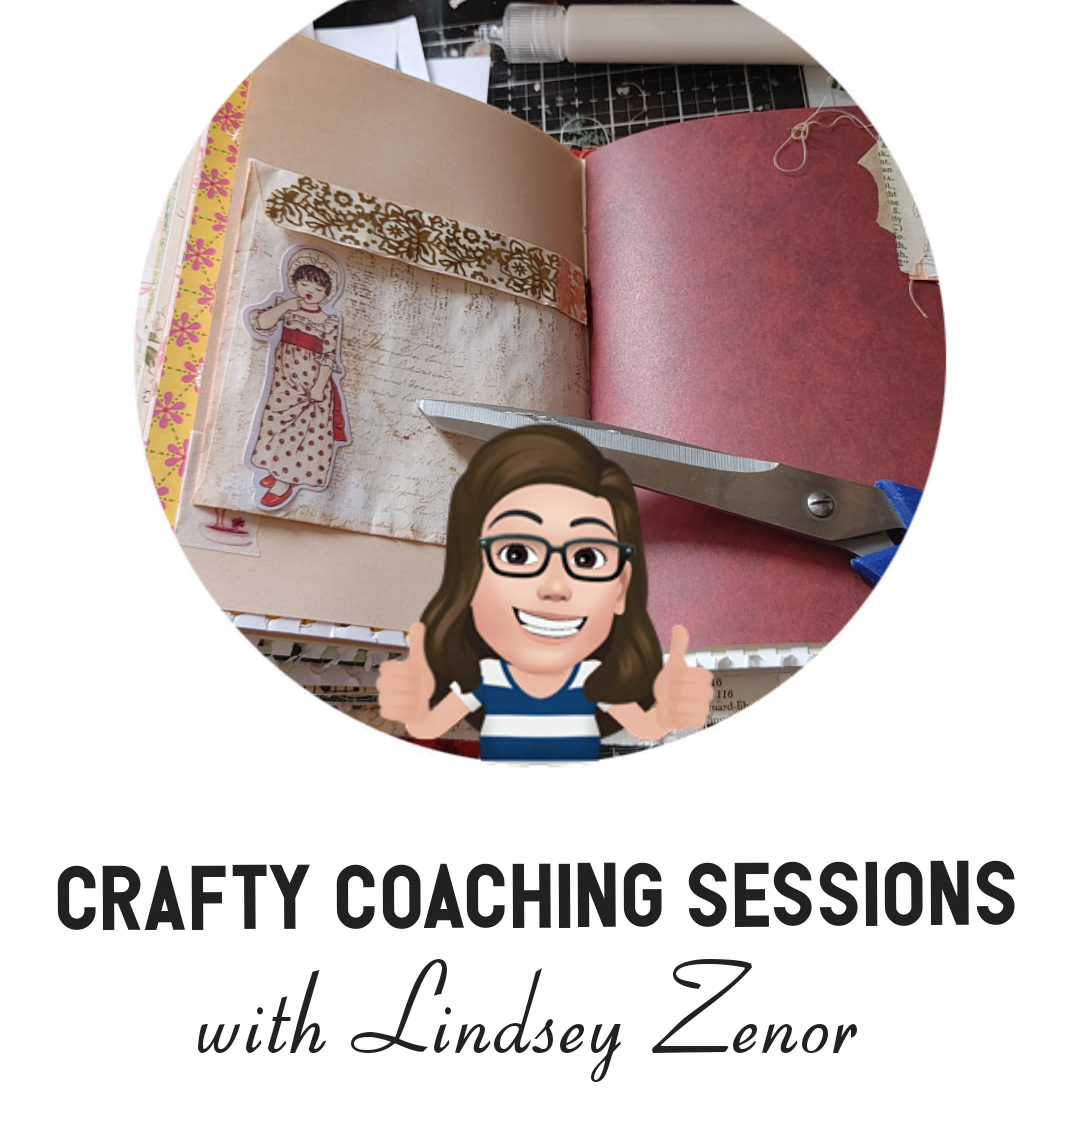 Crafty Coaching Session